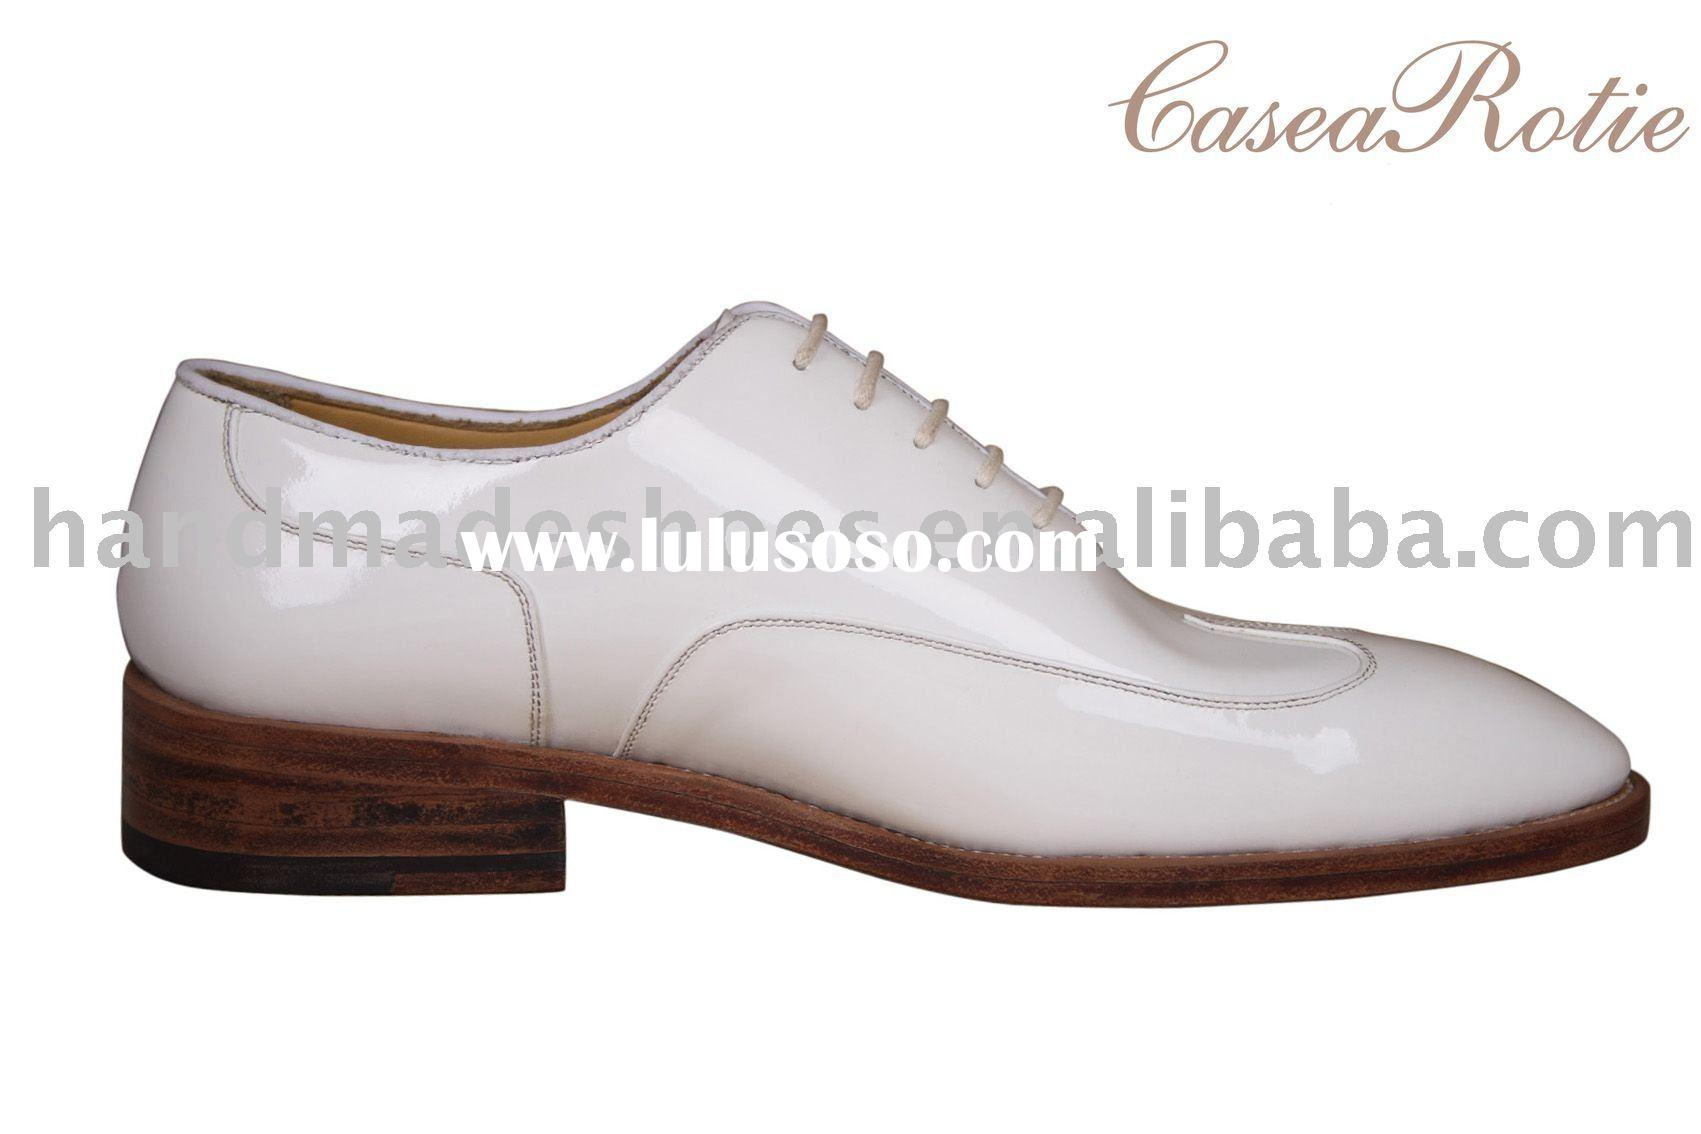 NEW style the leather upper white dress man shoe handmade by Italy technic